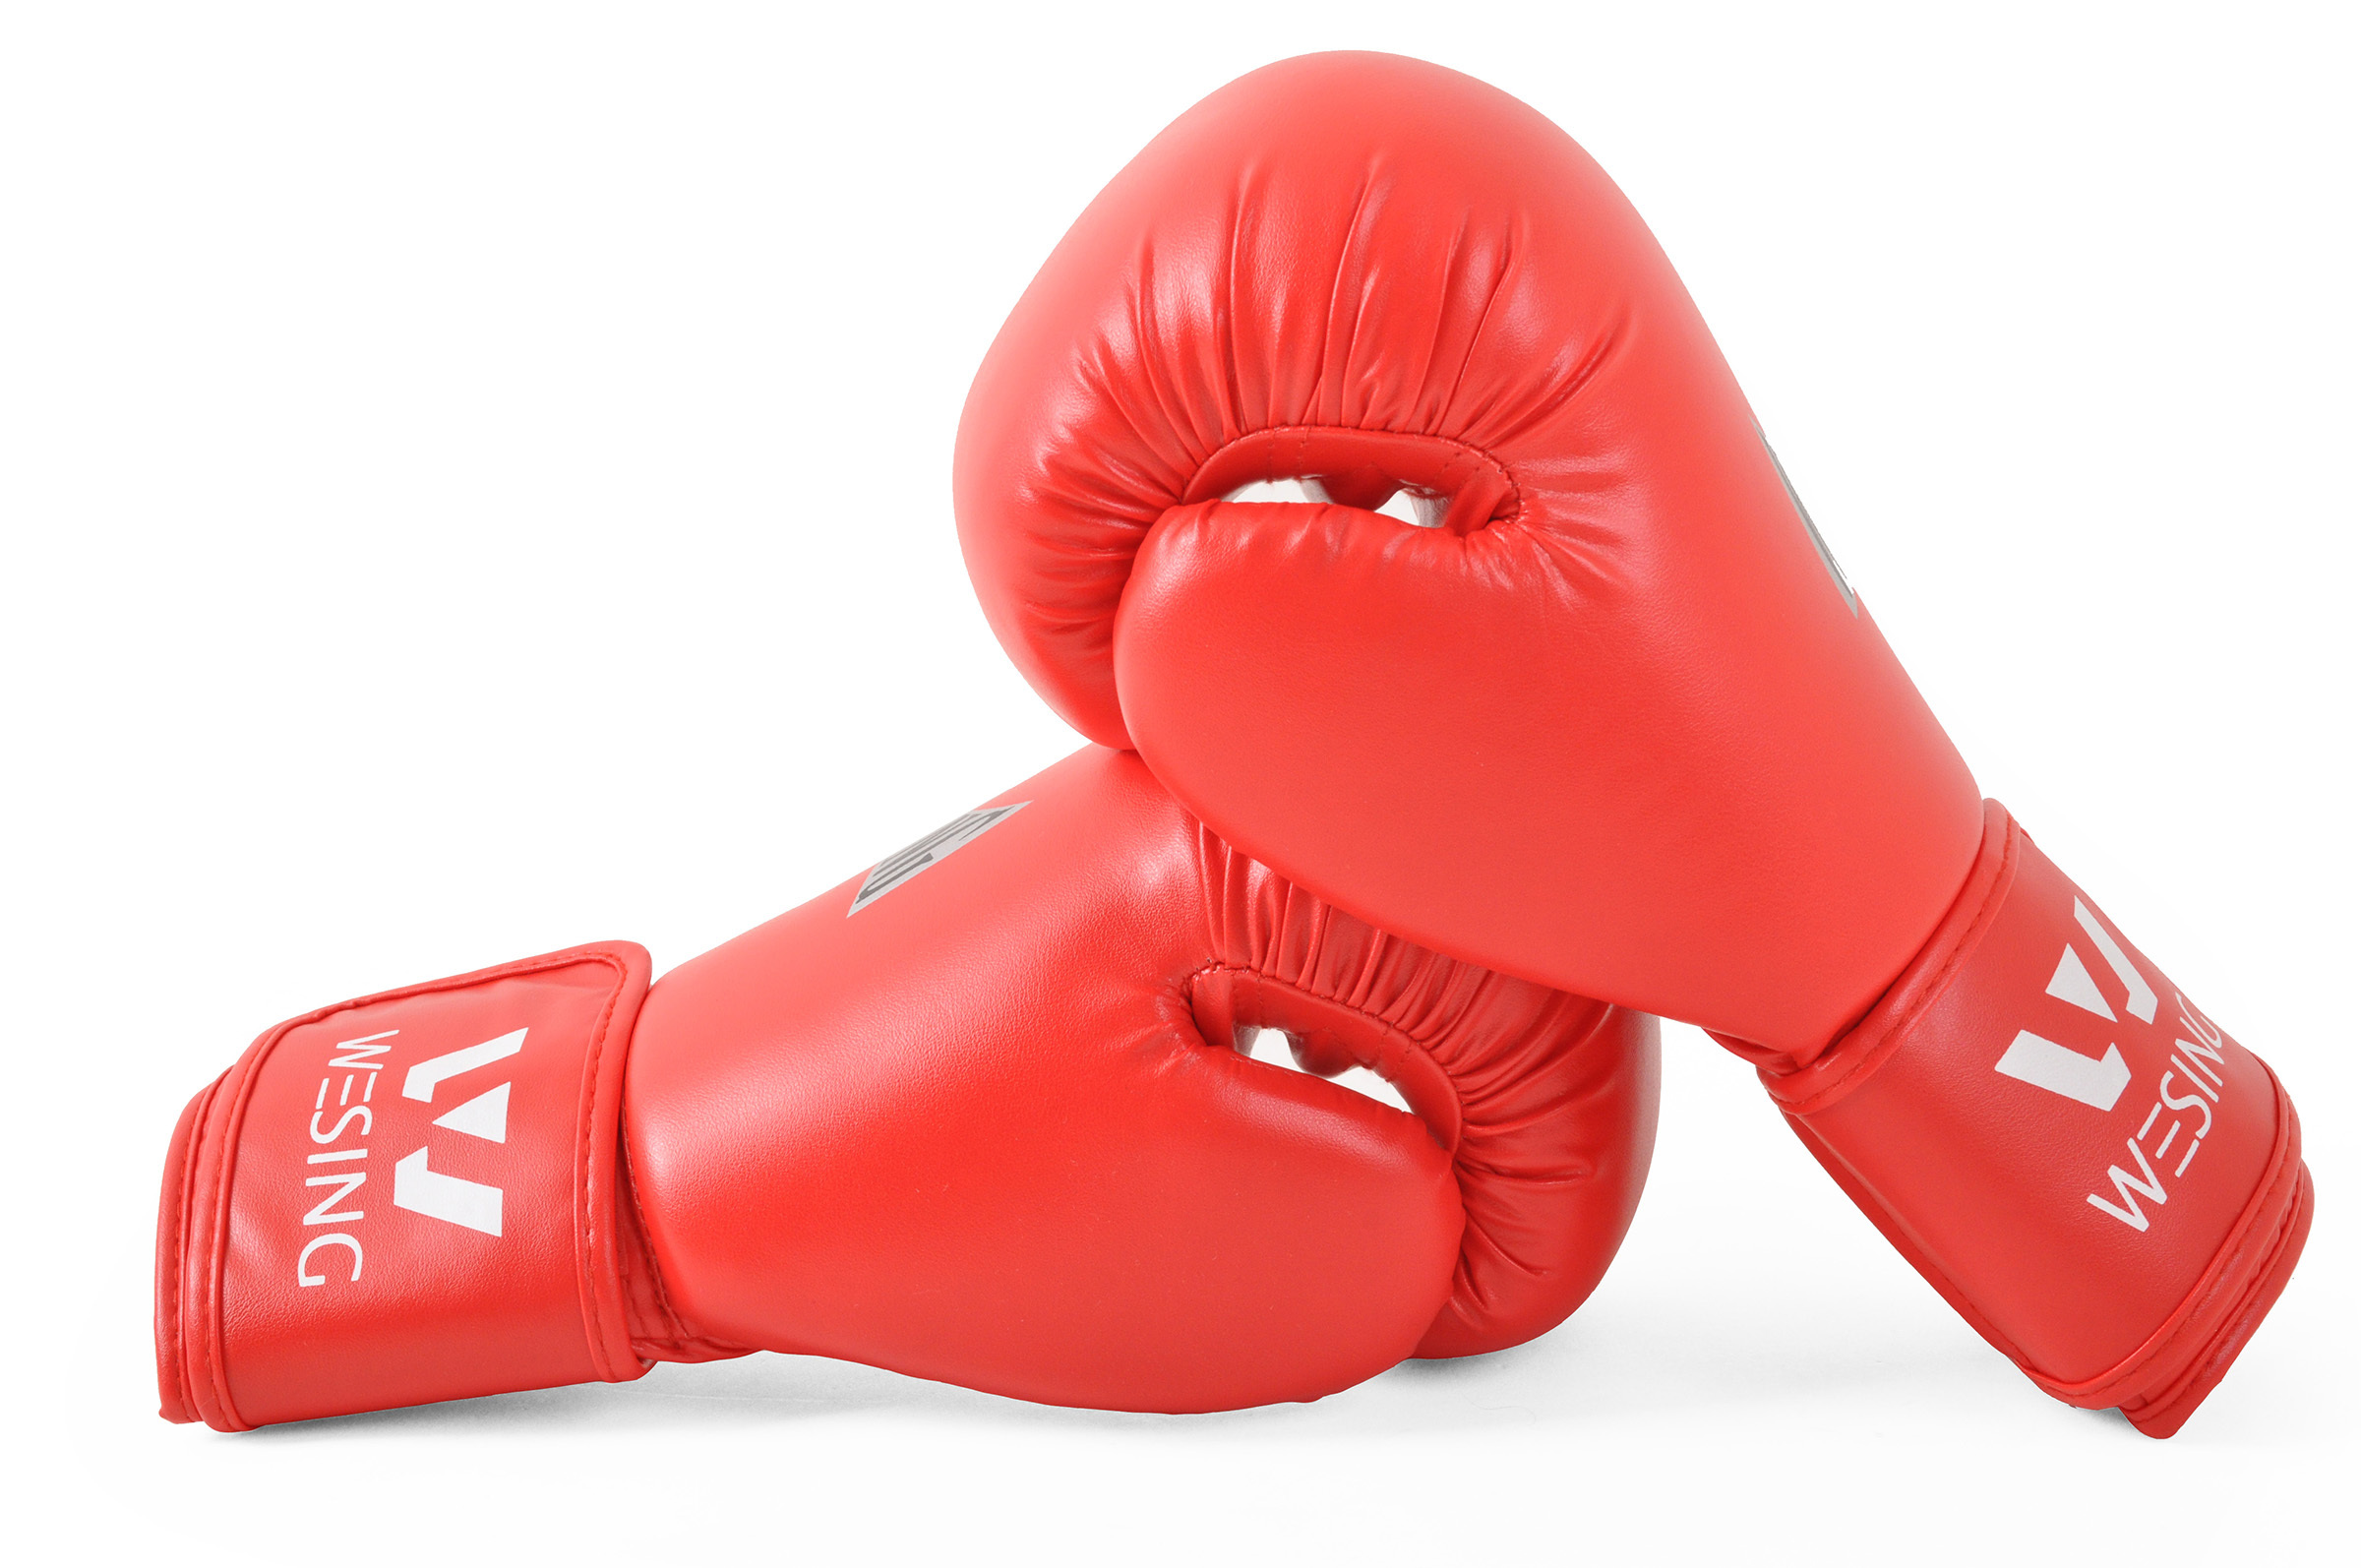 Boxing Gloves Wallpaper For Computer